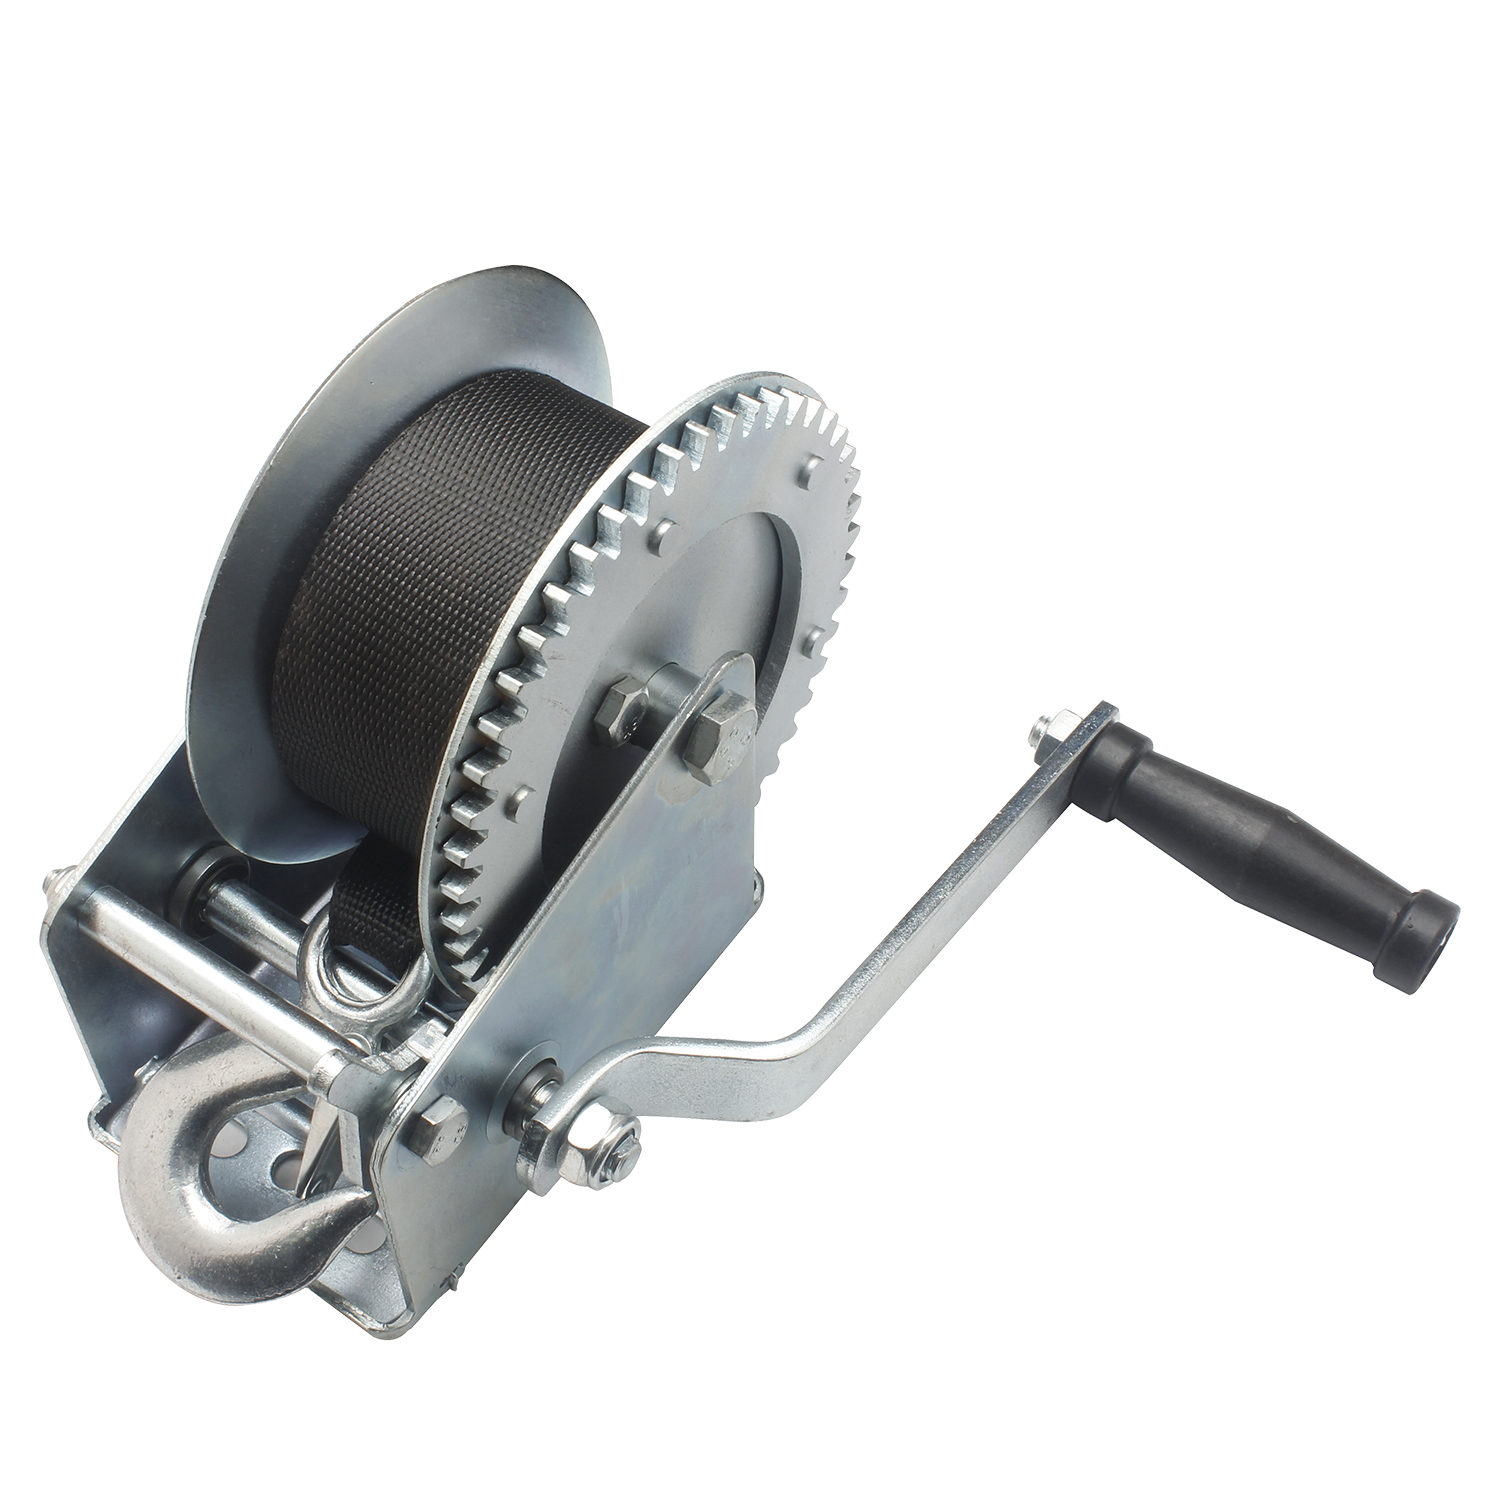 1600lb Hand Manual Winch Trailer Strong Gear Winch With 7 Meters Ribbon Boat Windlass Truck Auto Portable Manual Winchs